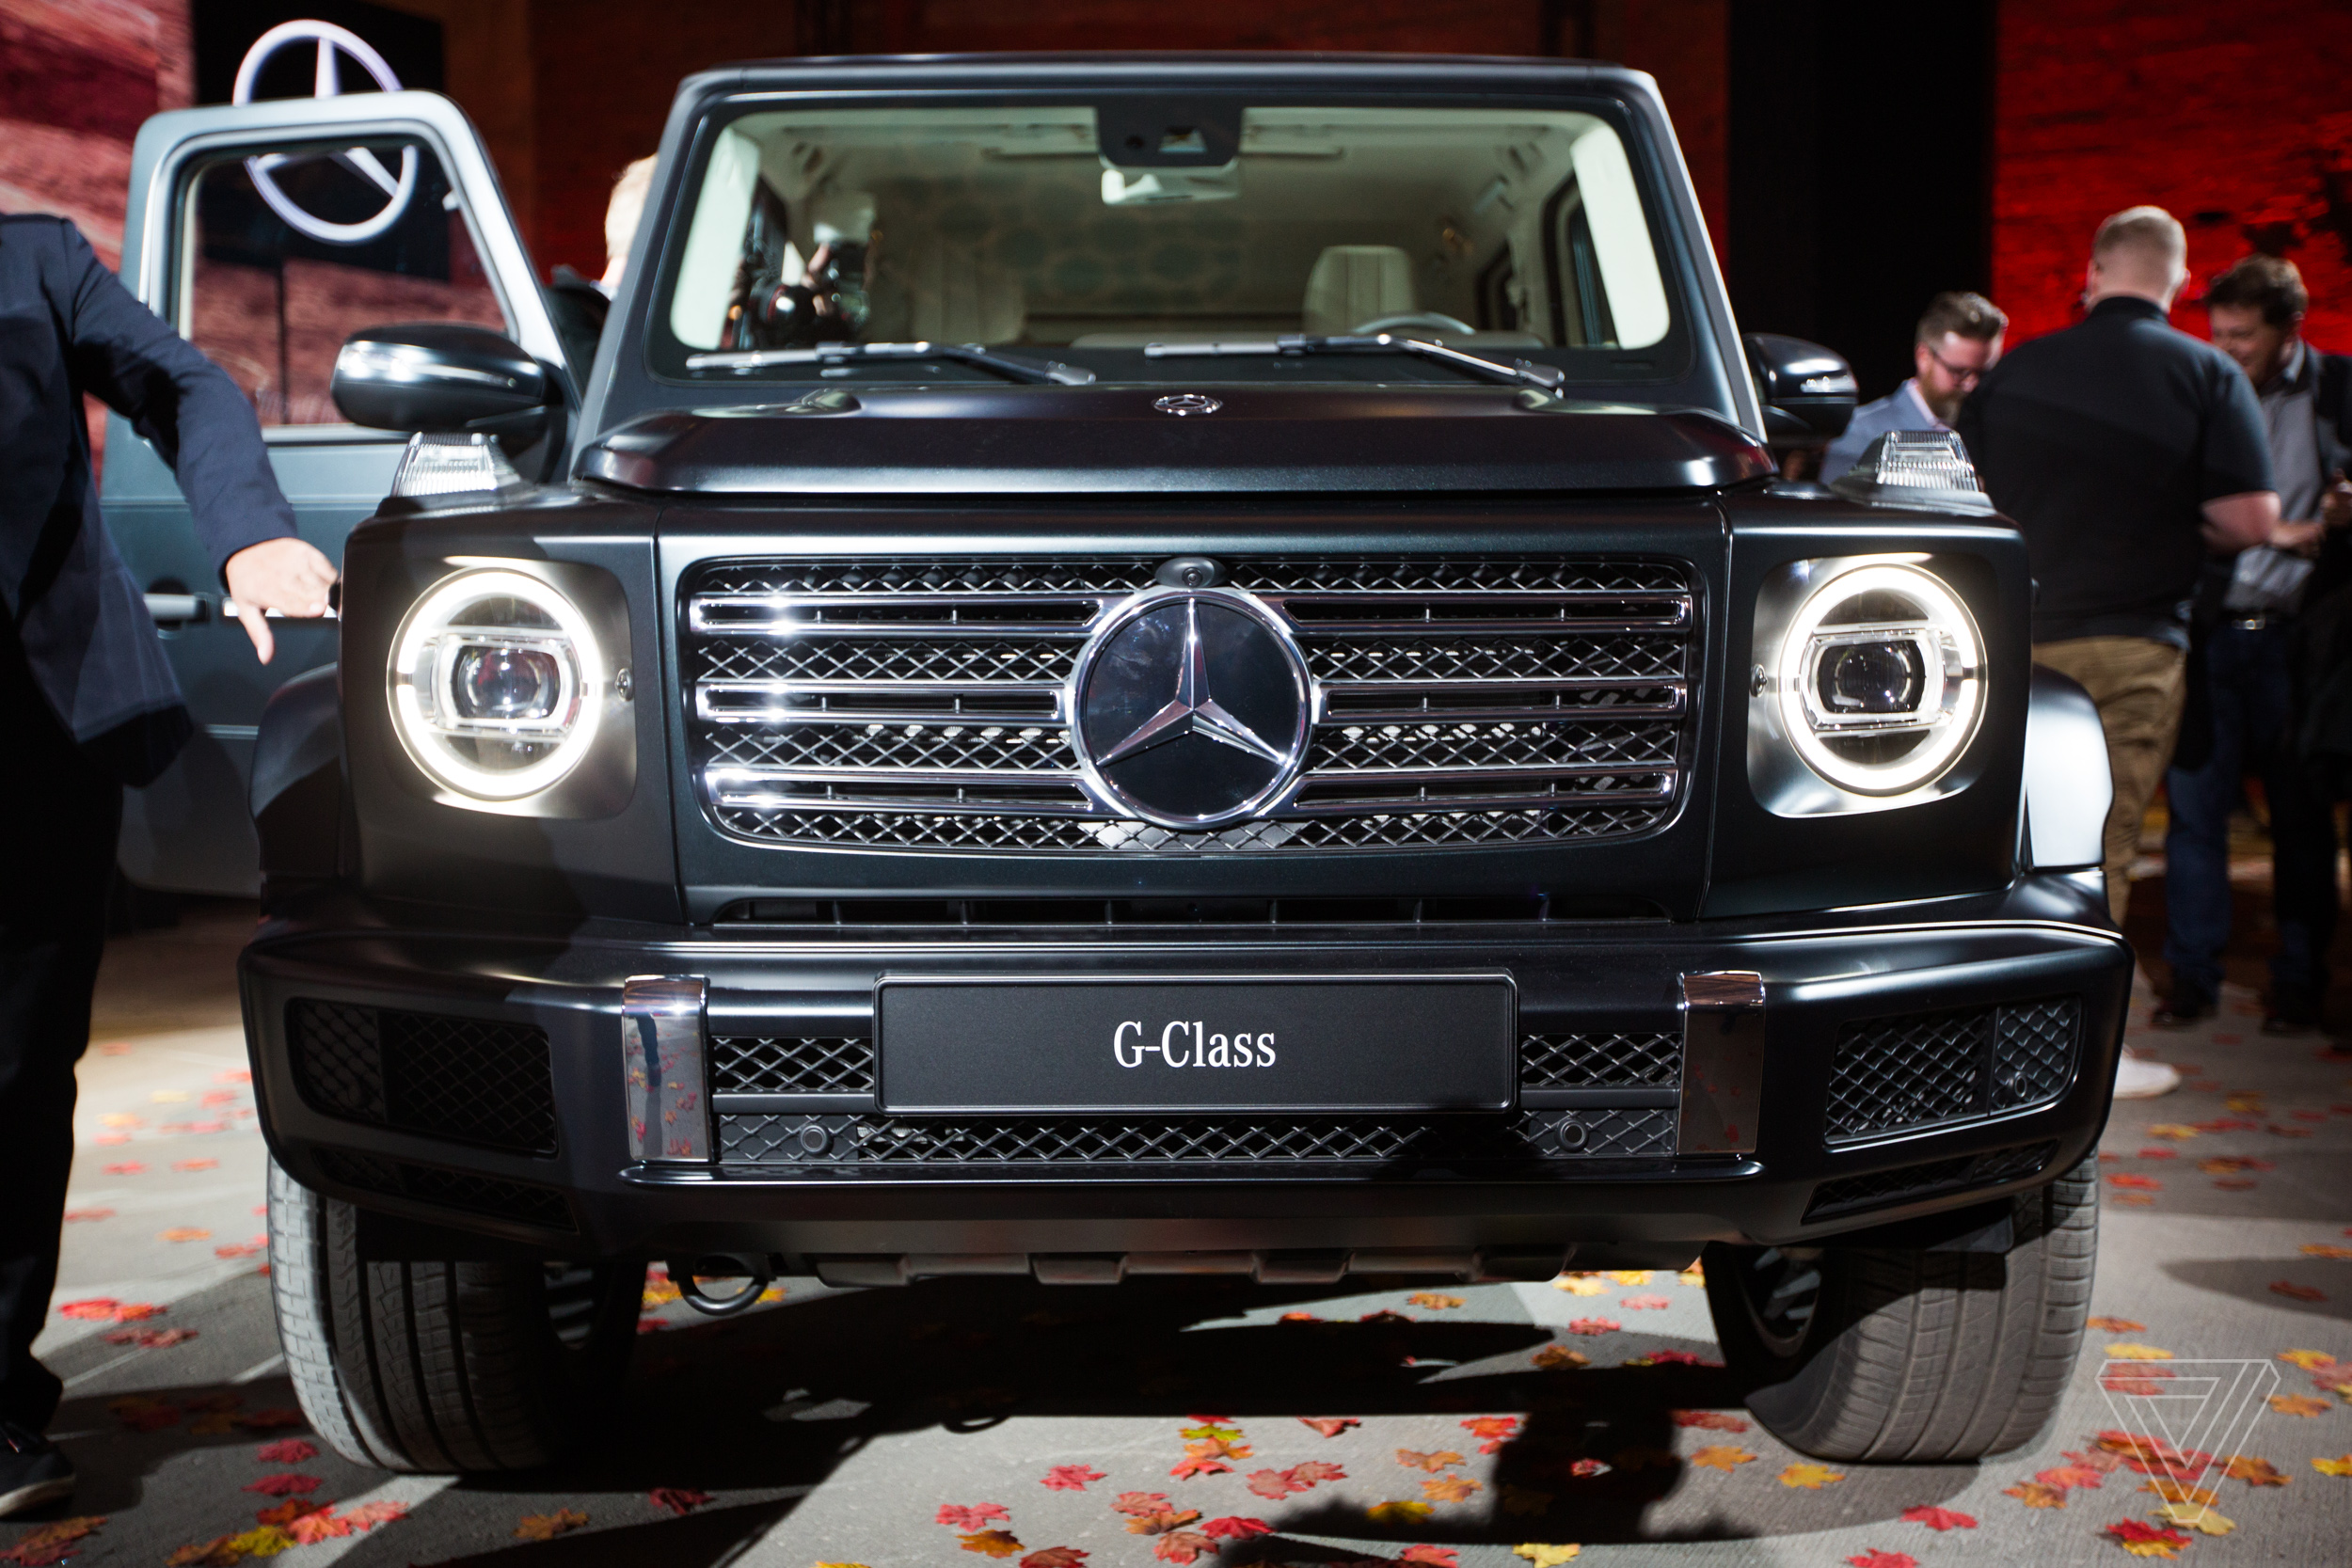 We climbed into the new mercedes benz g wagen the verge for Auto mercedes benz